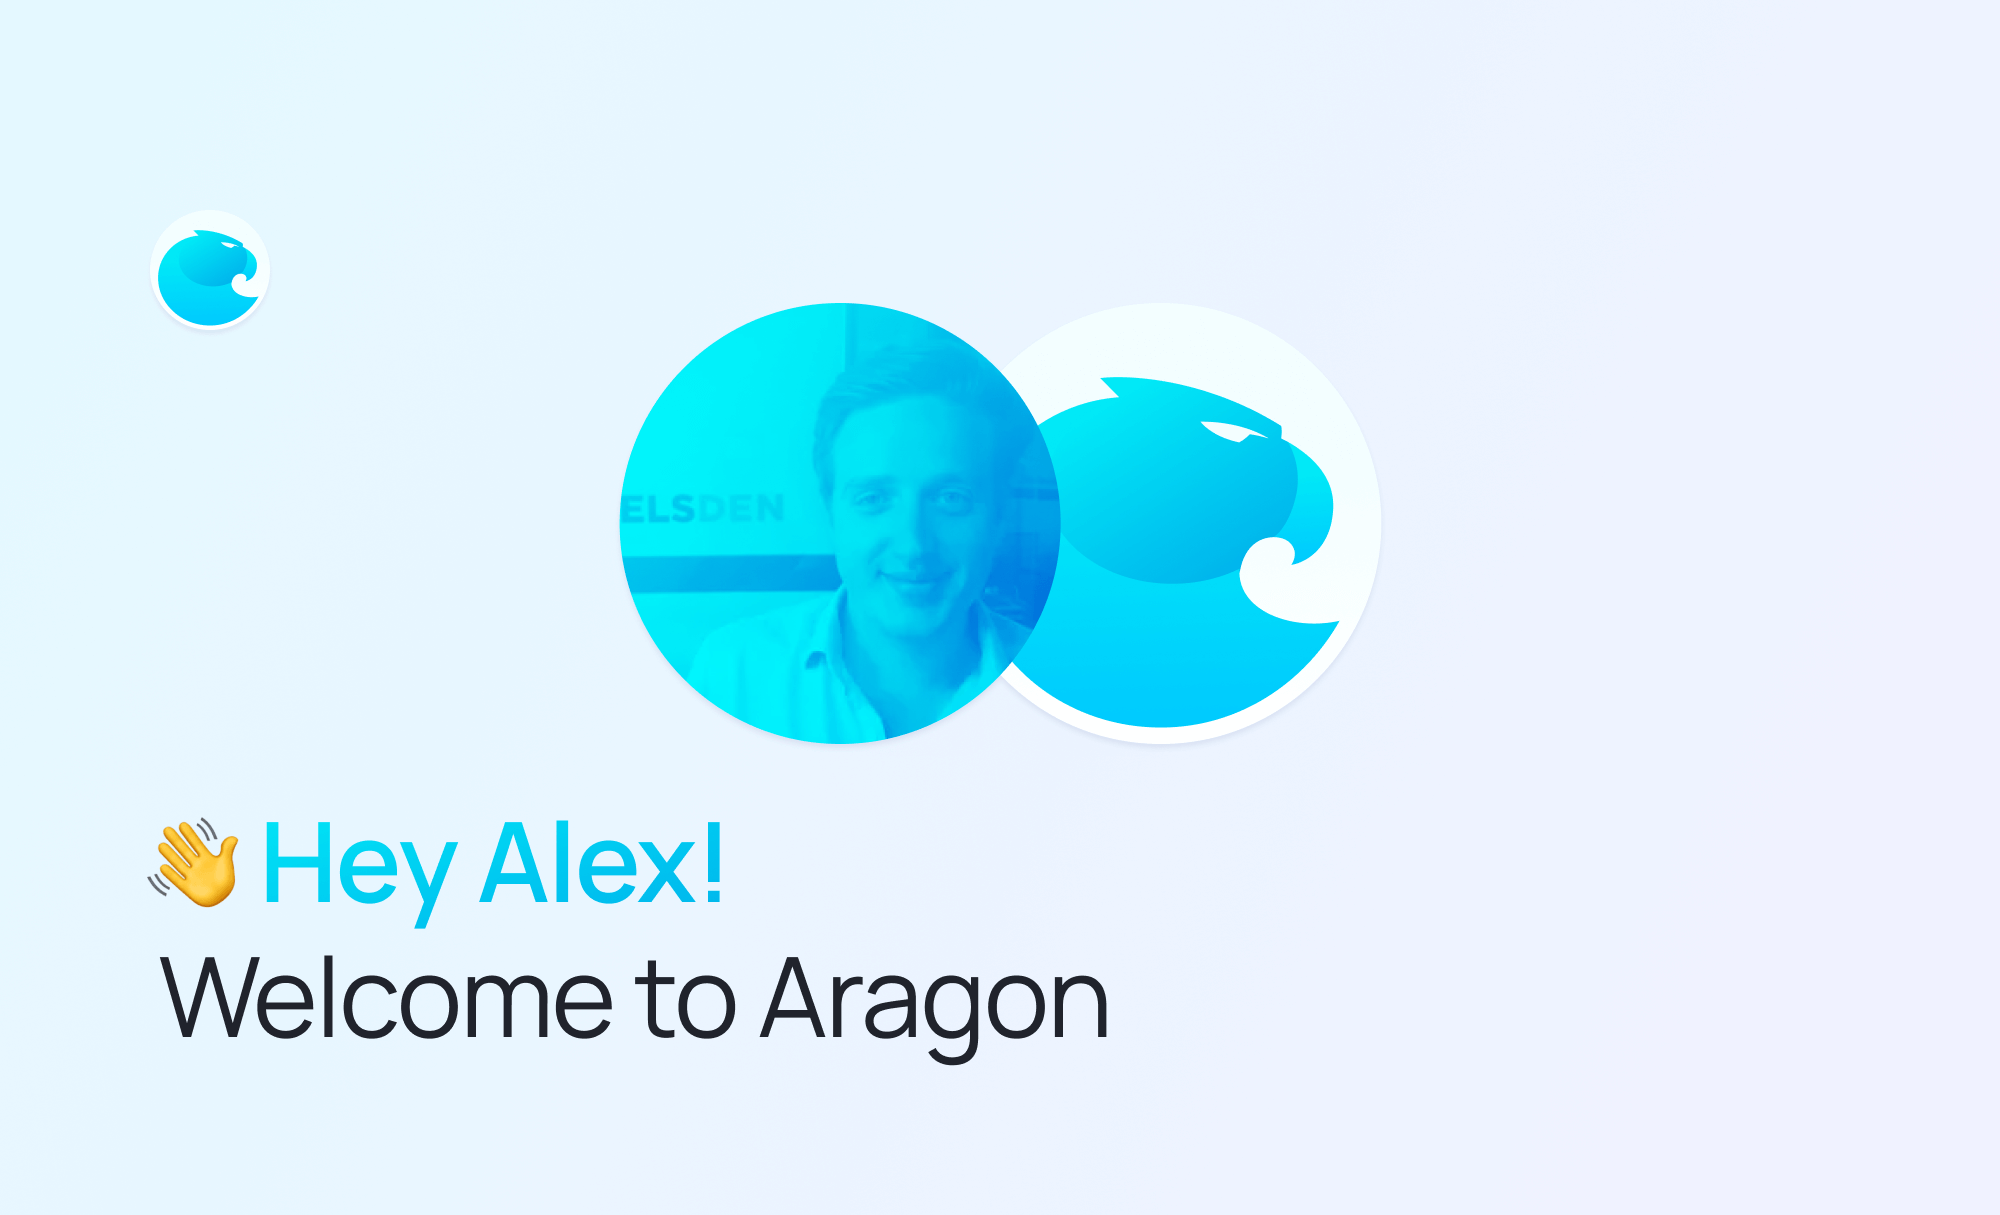 Welcoming Alexander Clayhills as the new Head of Transparency of the Aragon Association